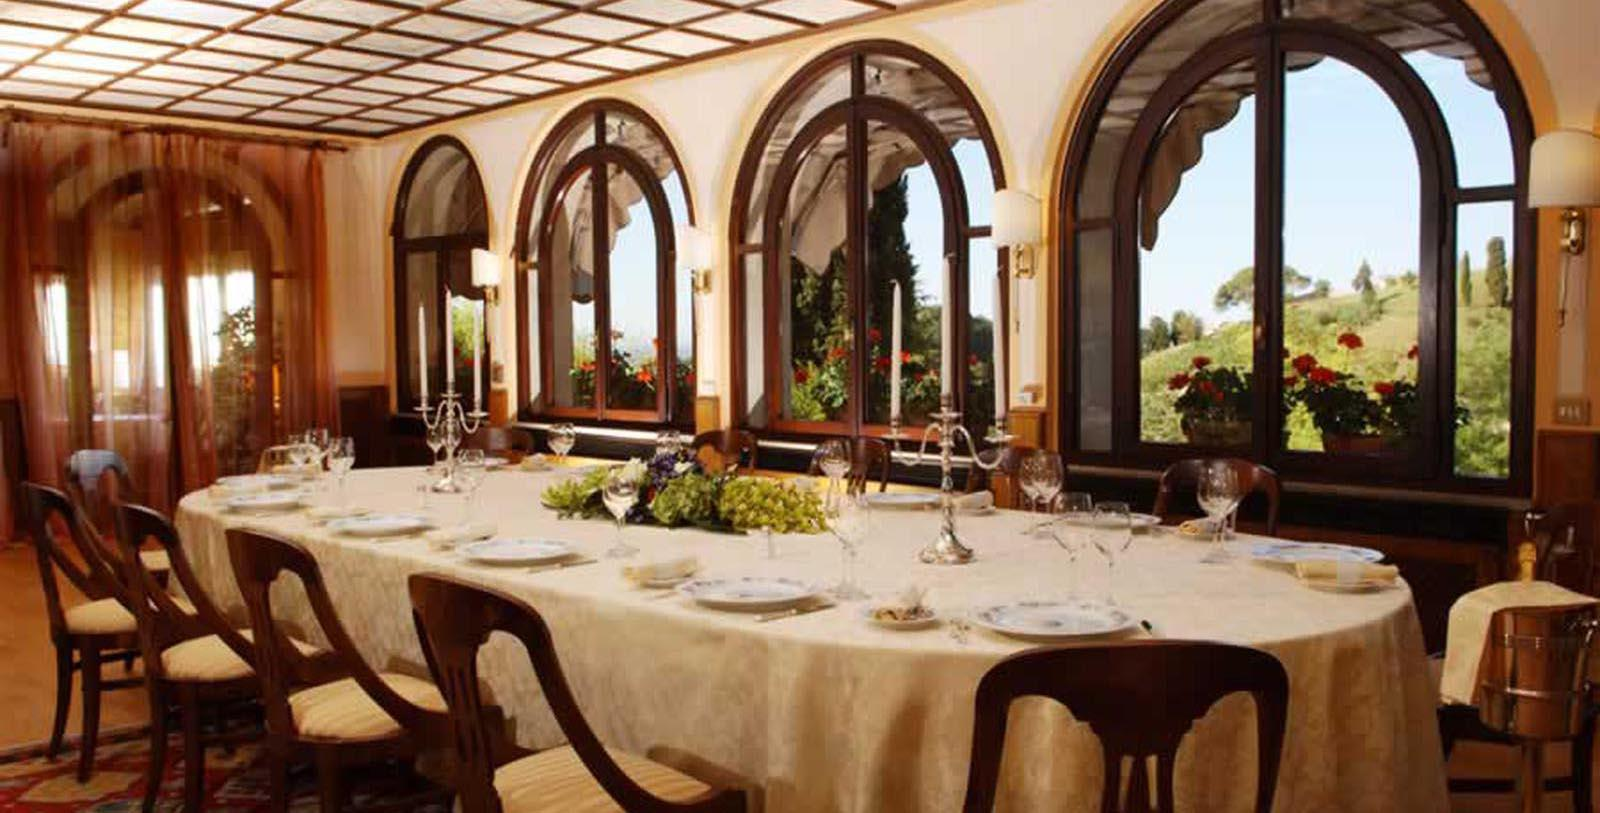 Image of Villa Cipriani Restaurant Hotel Villa Cipriani, 1889, Member of Historic Hotels Worldwide, in Asolo, Italy, Experience